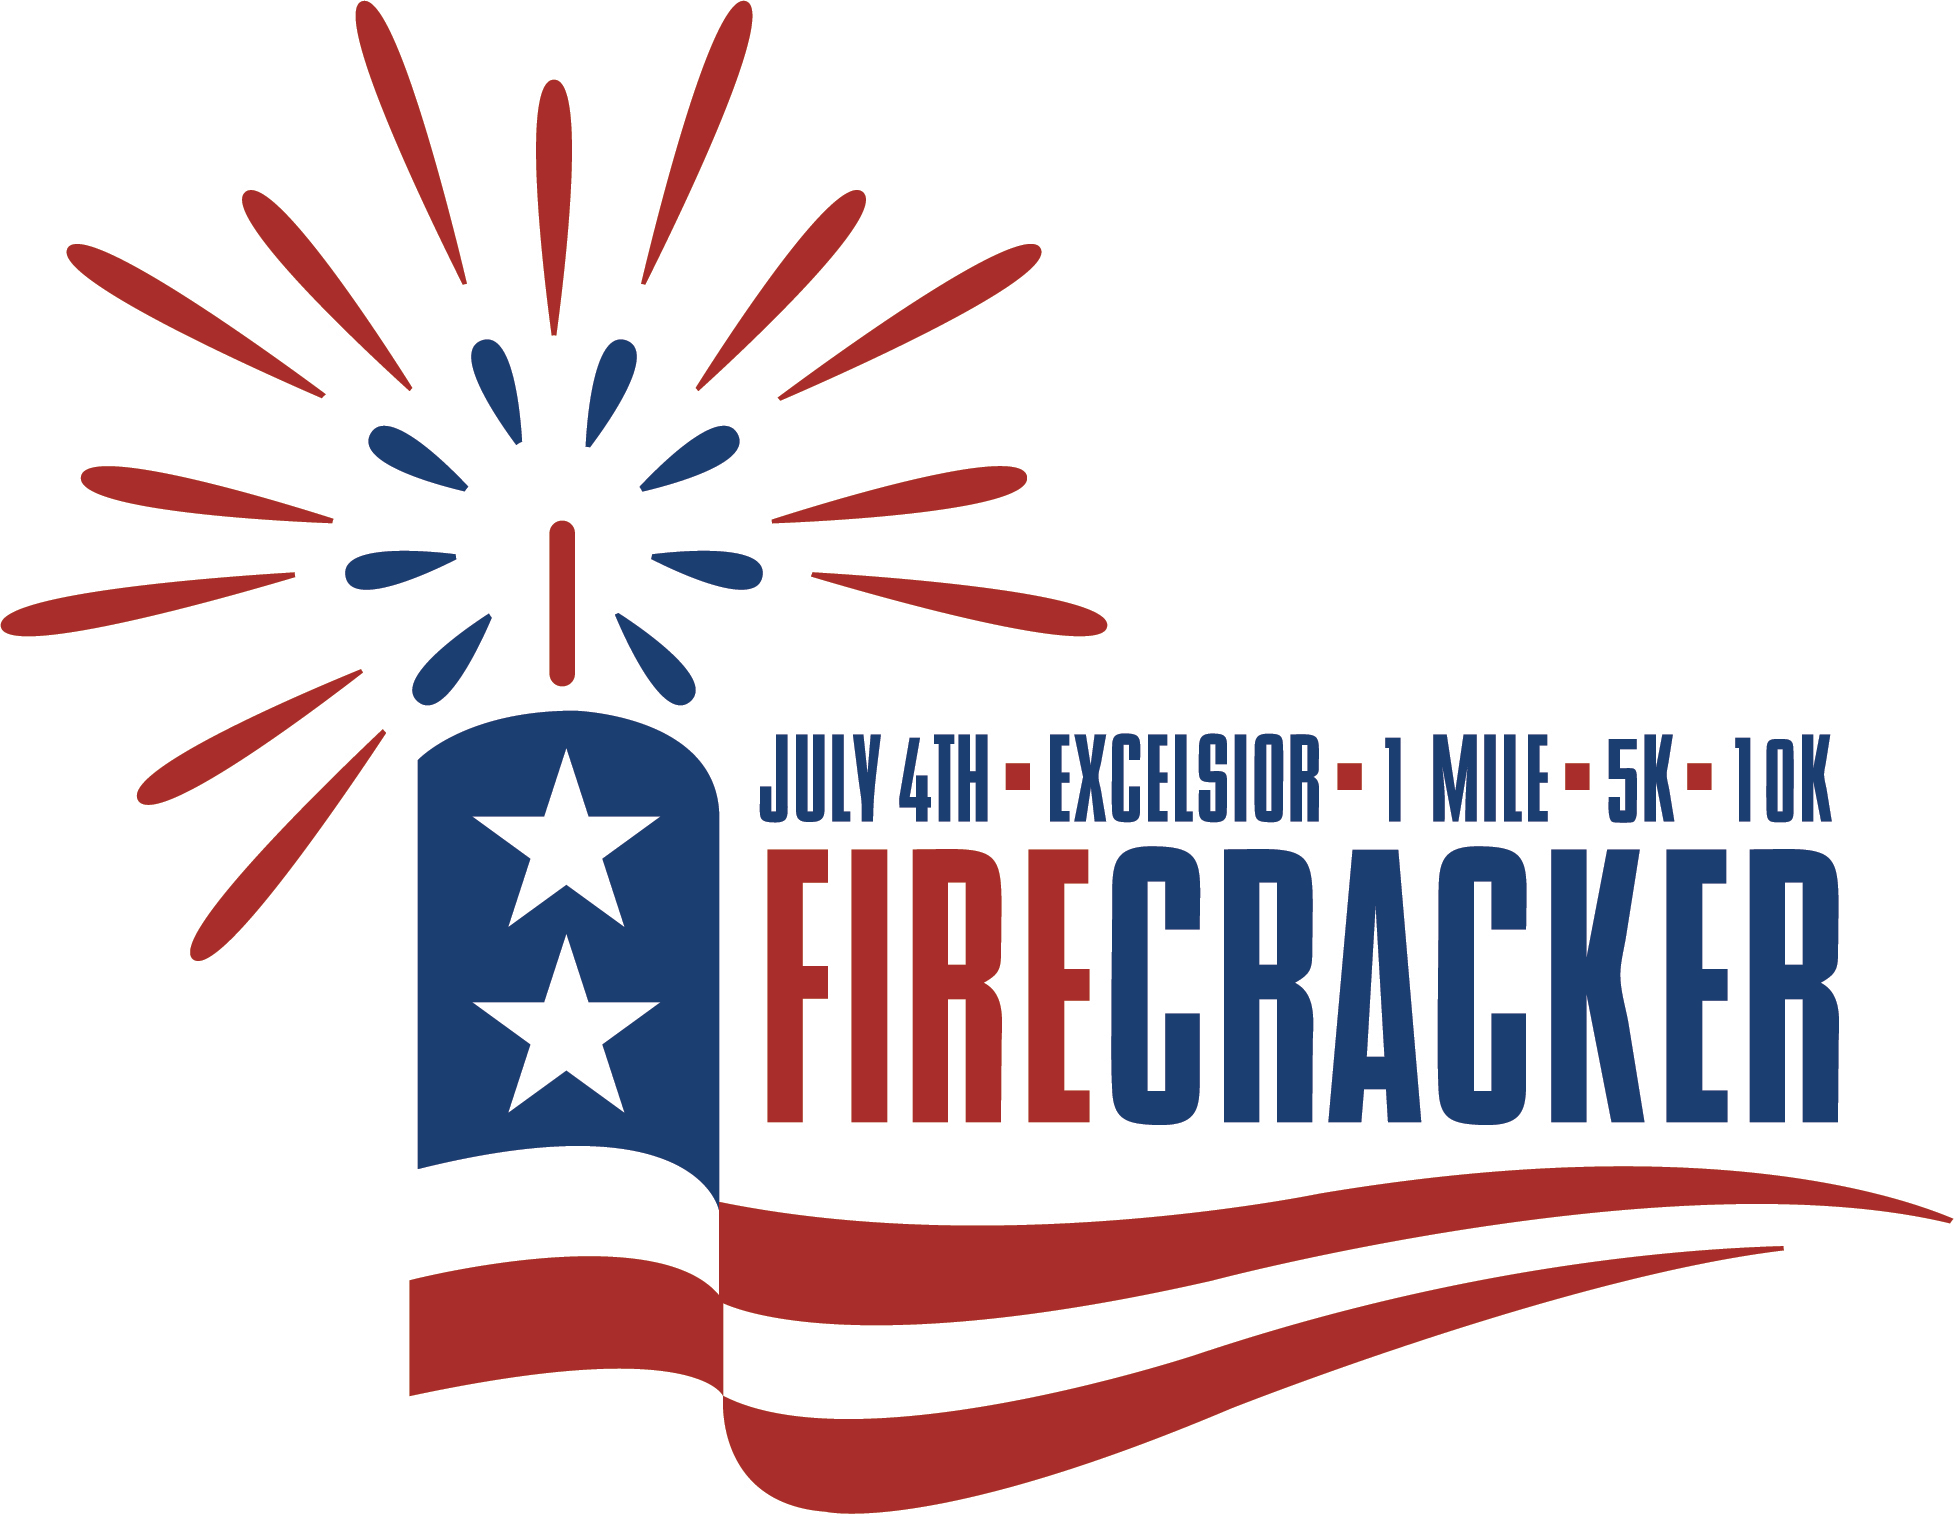 Firecracker Run